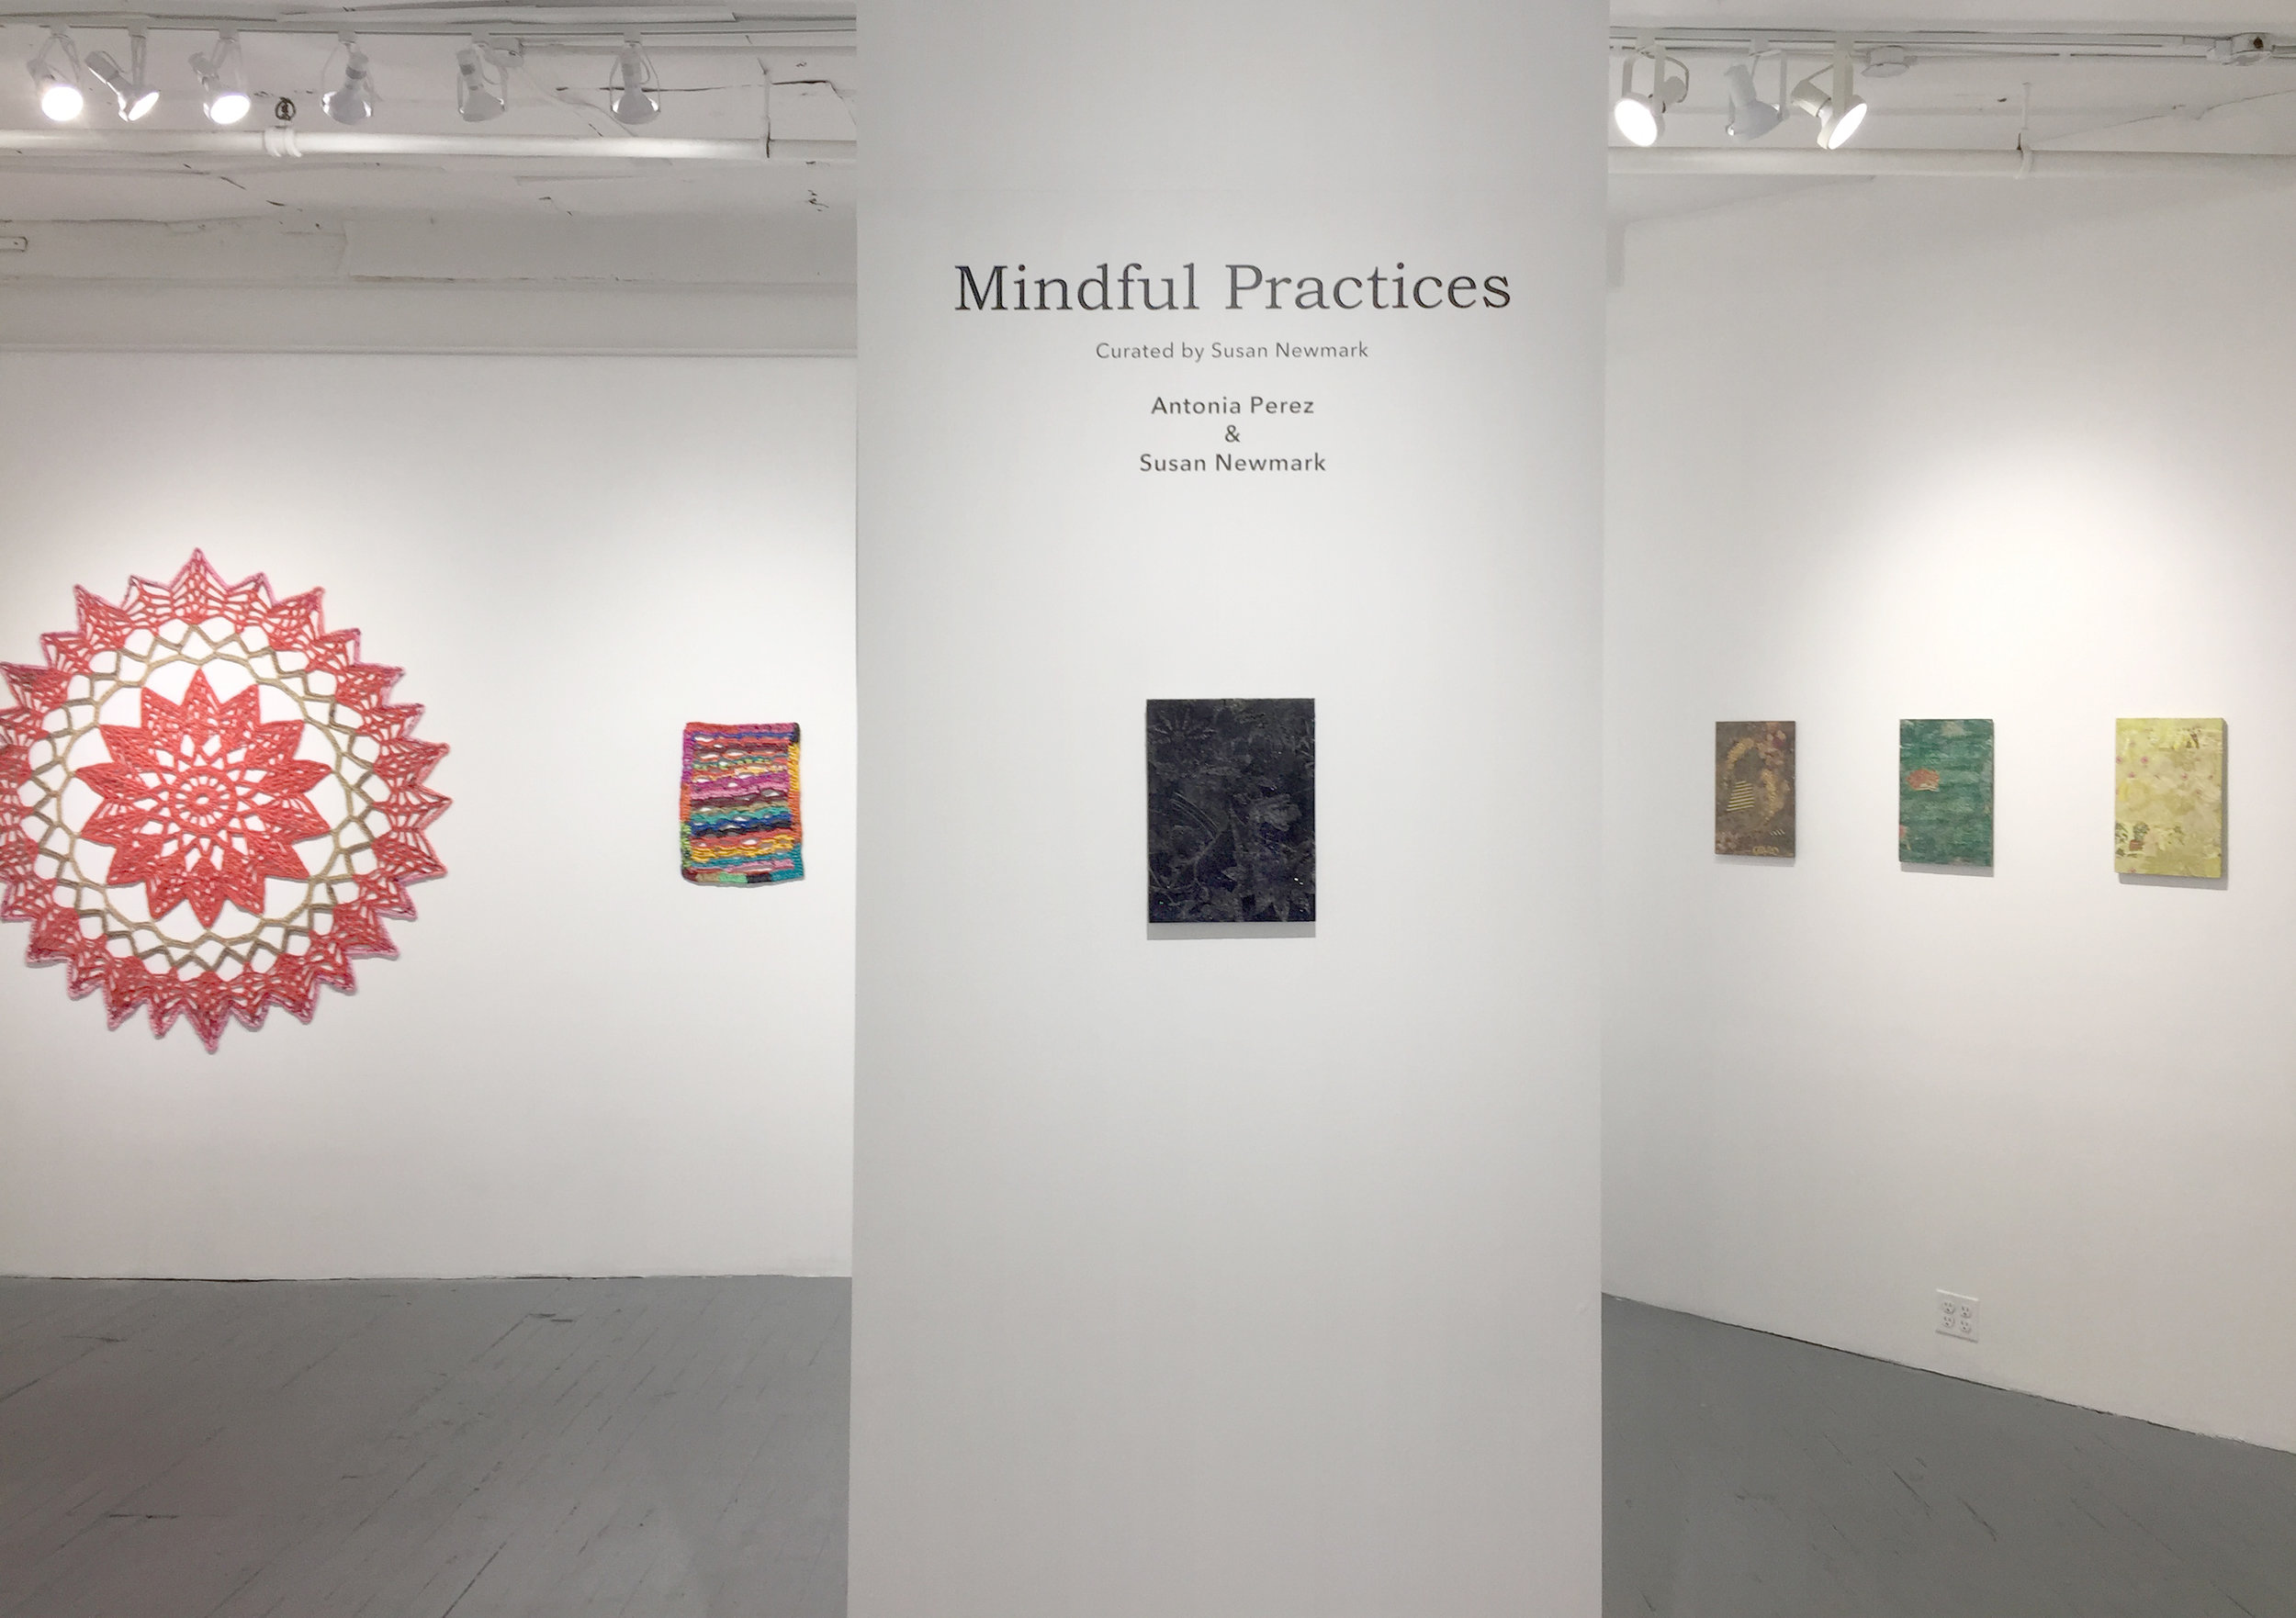 Mindful Practices